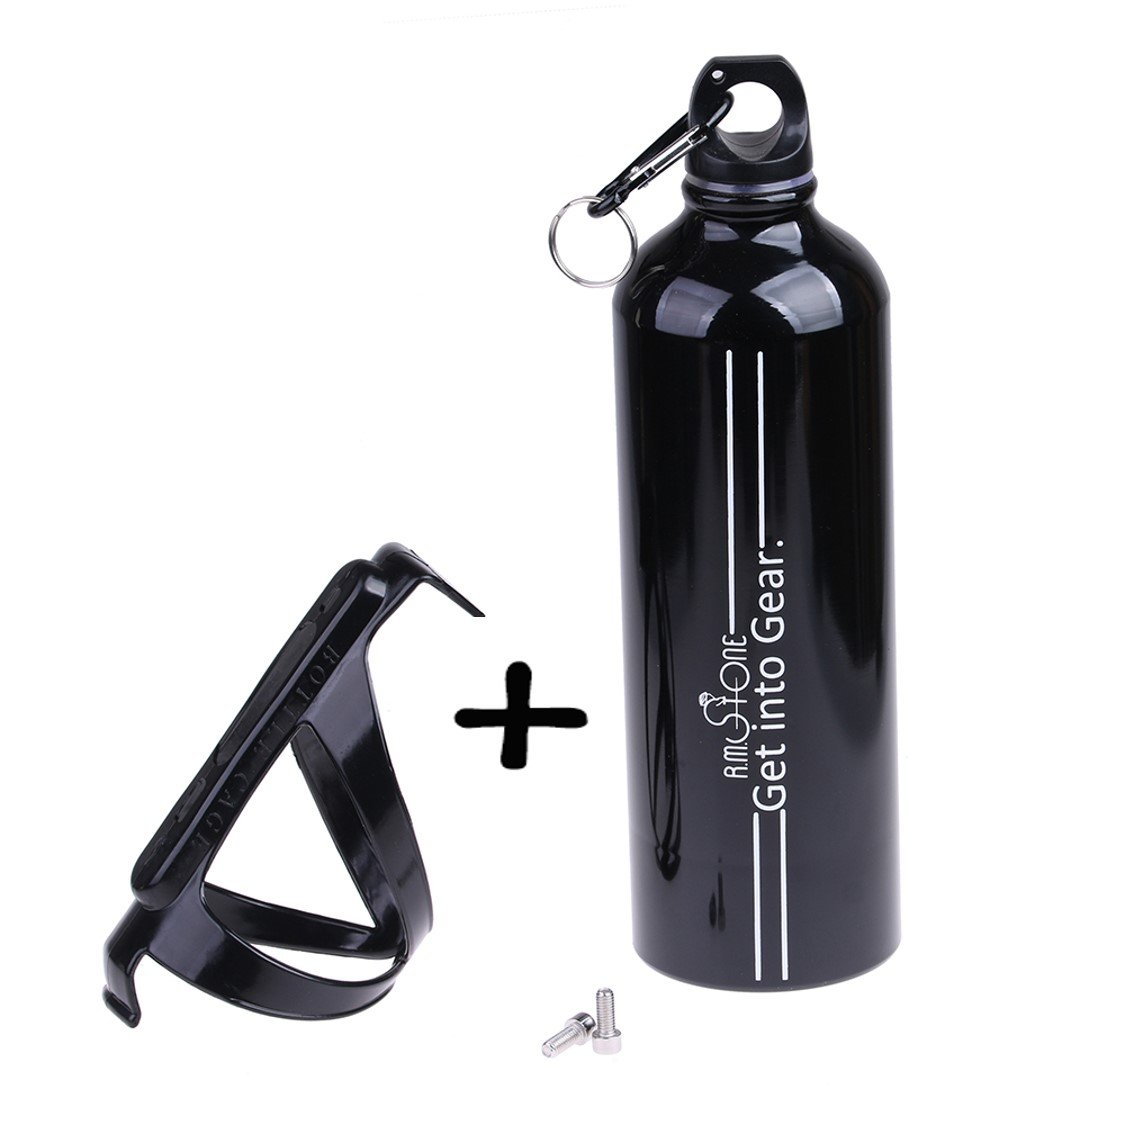 On Foot It's Easy To Carry With Ergonomic Grip And Included Carabiner On  The Road It Fits Your Perfectly Sized Bicycle Bottle Holder That Securely  Holds